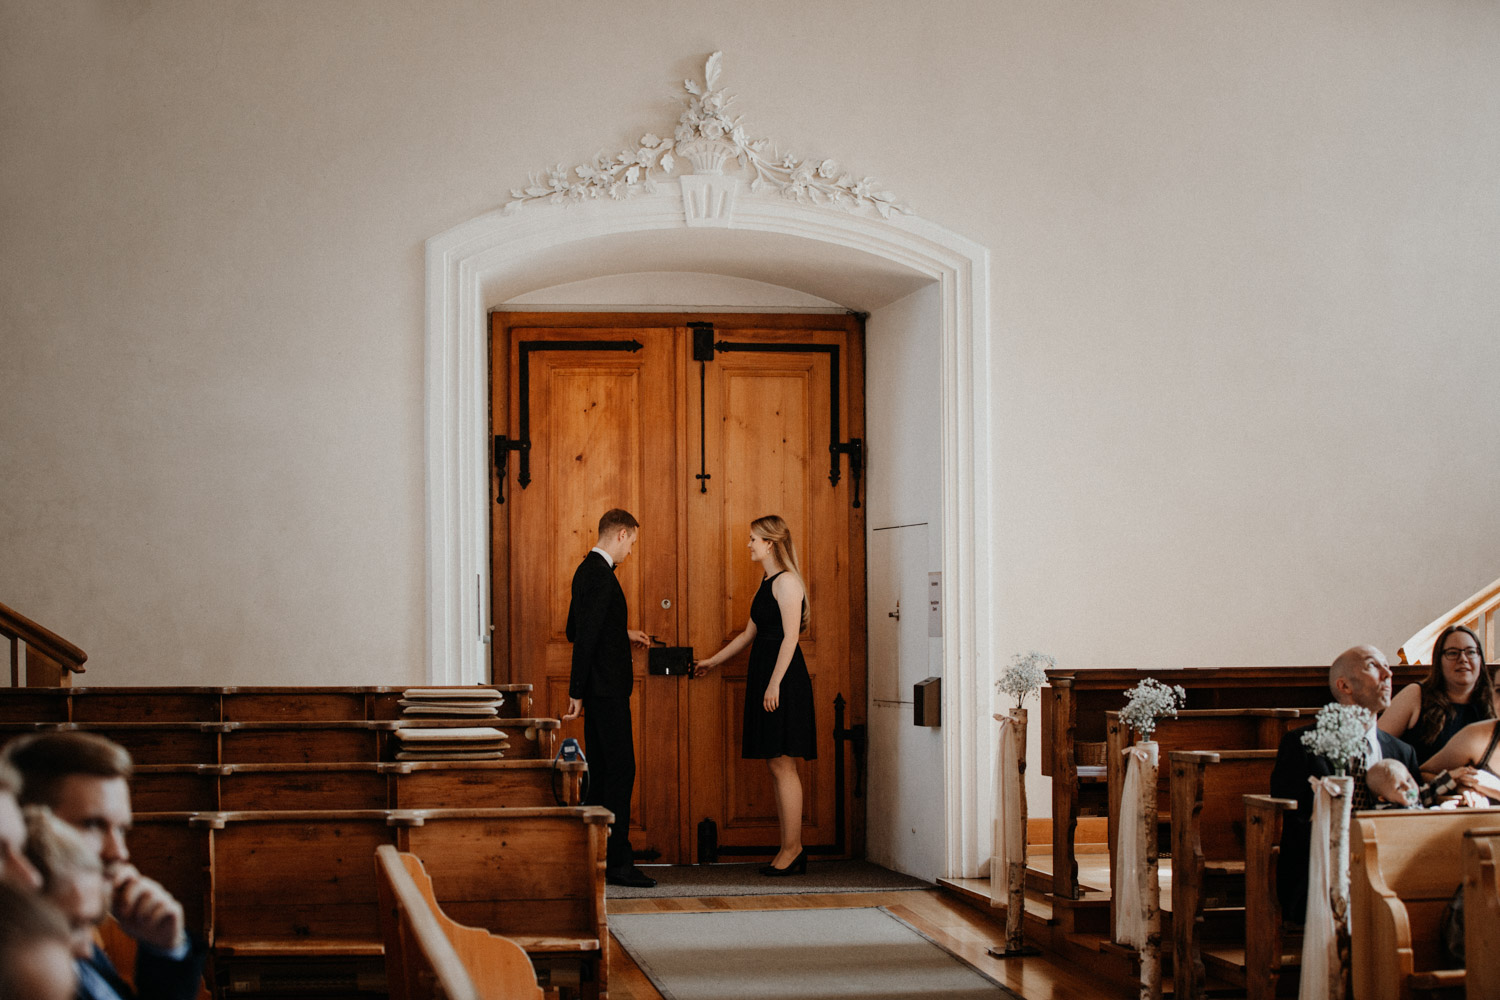 Wedding photographer in Switzerland church wedding